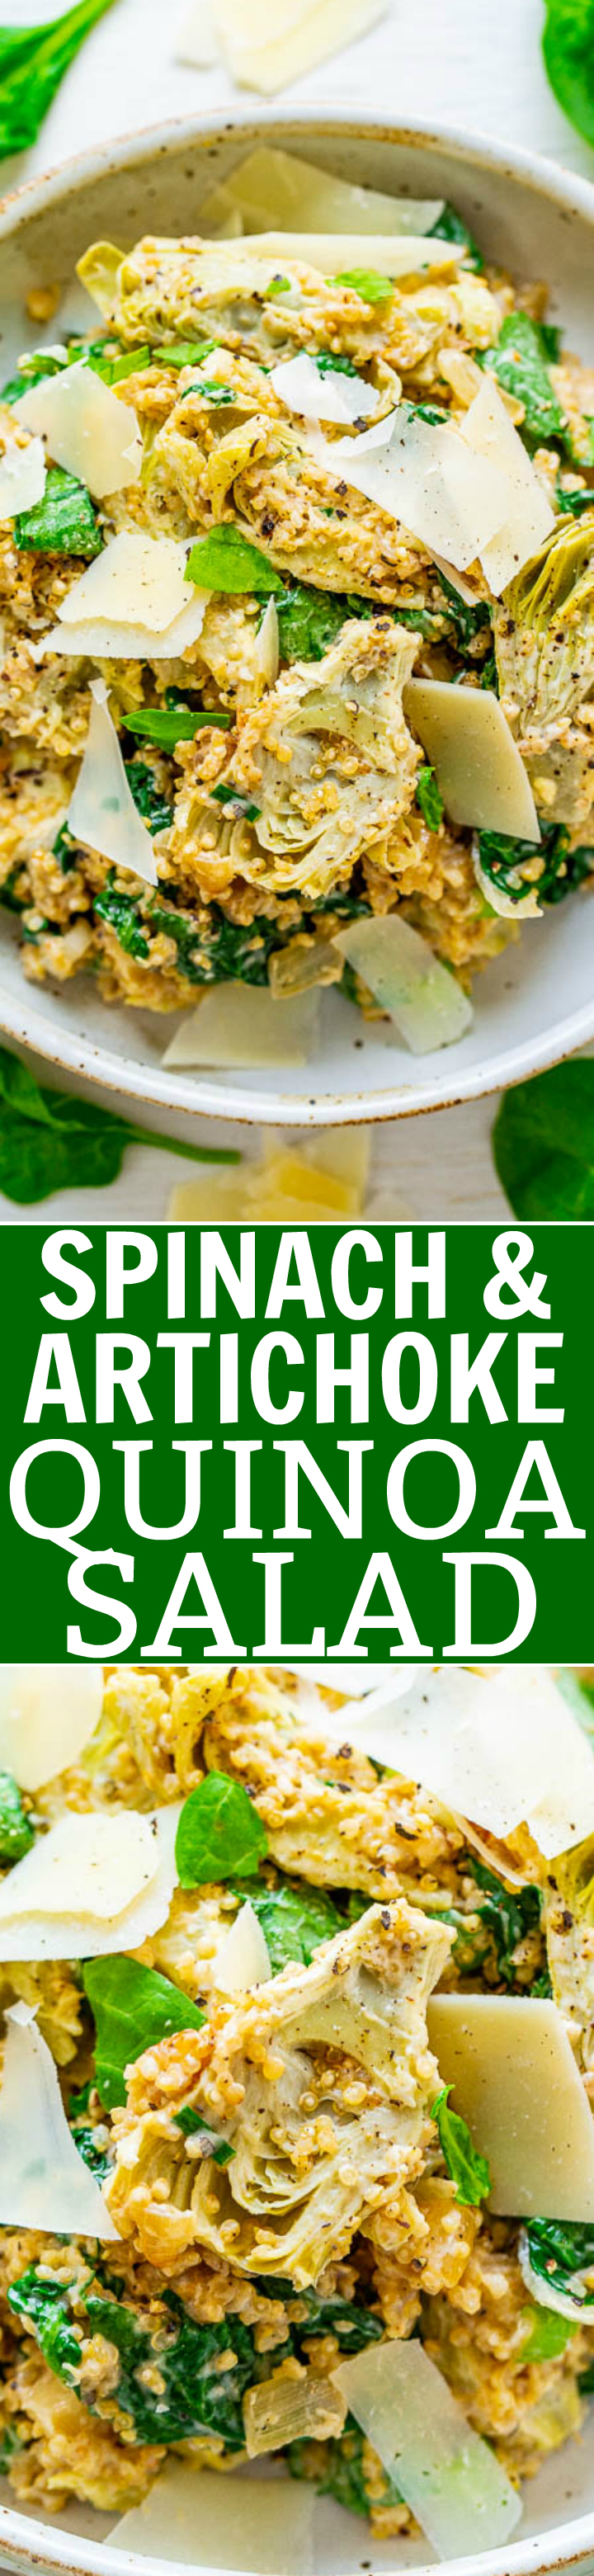 Spinach And Artichoke Quinoa Salad - All the flavors of classic spinach and artichoke dip are in this HEALTHY salad!! The only thing that's missing is tons of fat and calories! FAST, EASY, naturally gluten-free, vegetarian, and tastes DELISH!!